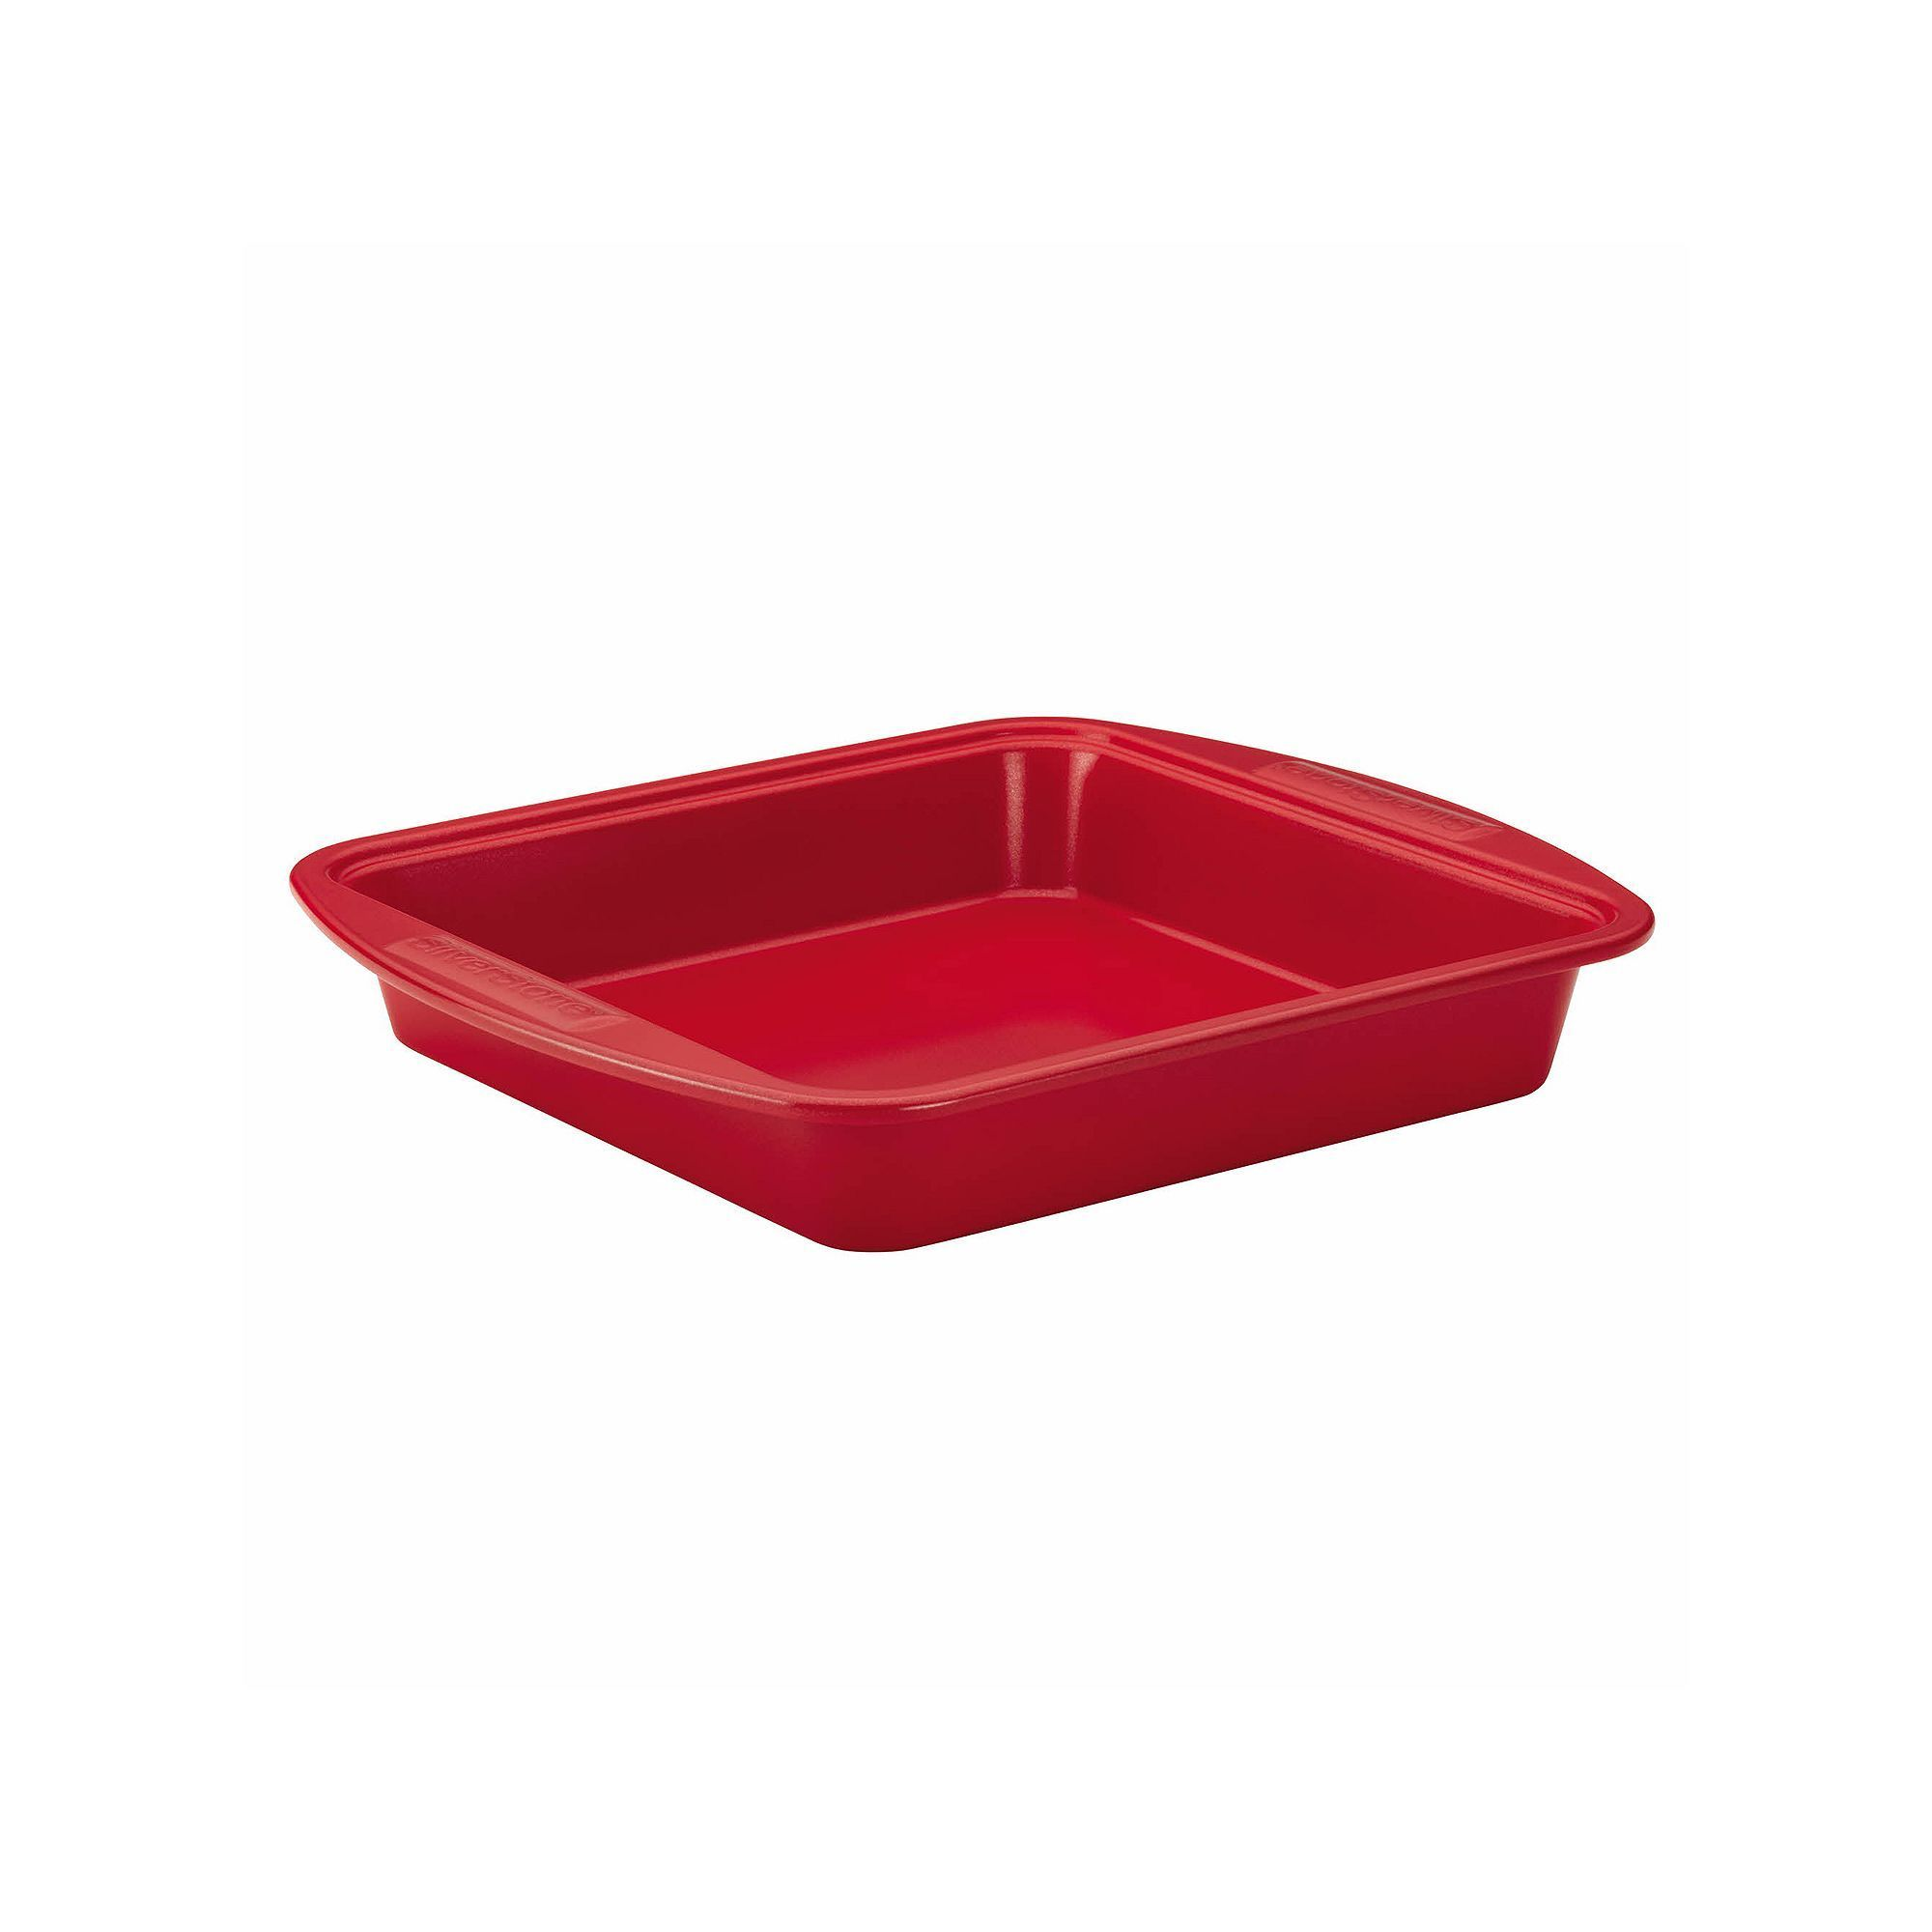 Silverstone 9 In Cake Pan Products Square Cake Pans